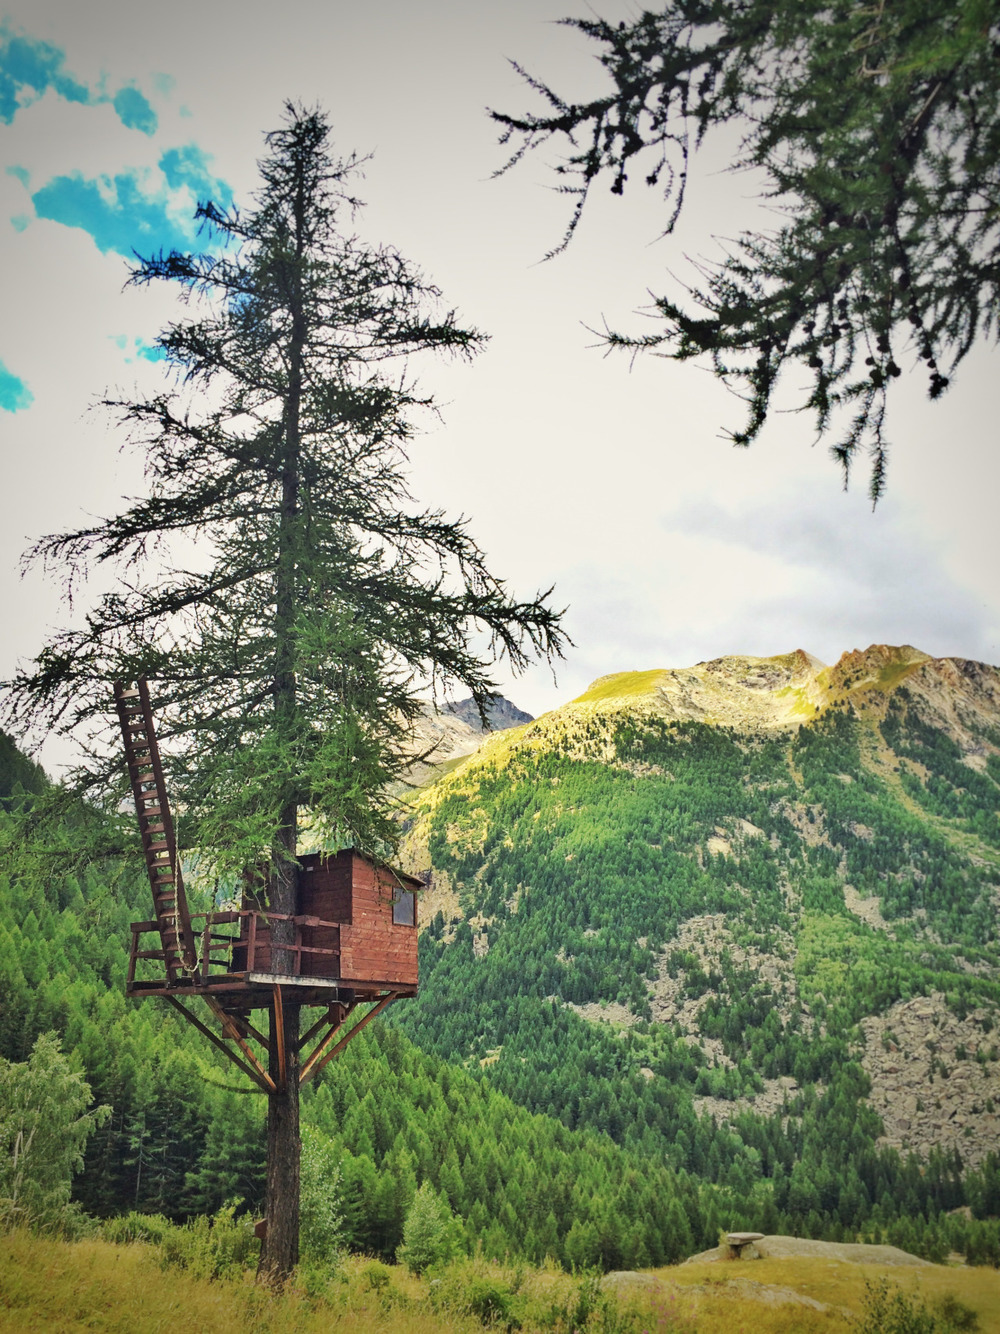 Treehouse  in Gran Paradiso National Park near Cogne, Aosta, Italy